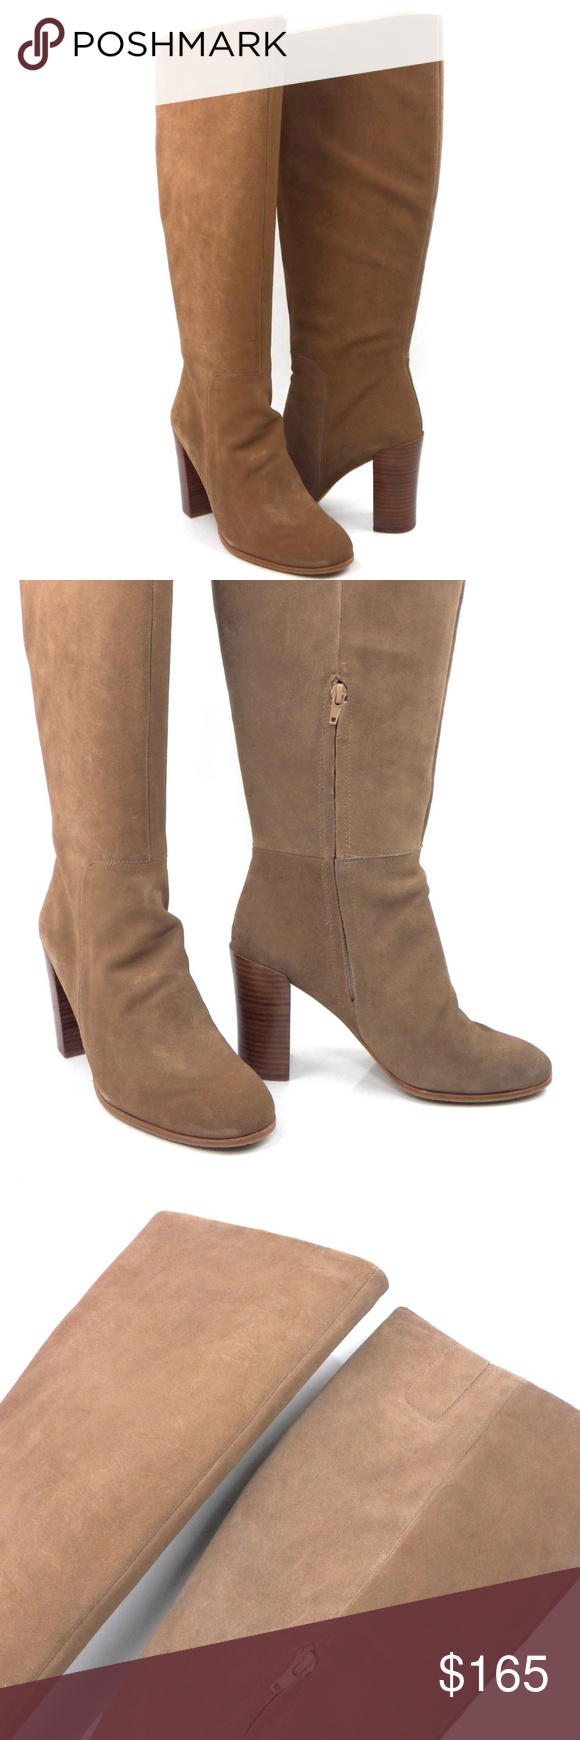 943dfc6ff62 Kenneth Cole Justine Boots Tall Wide Calf Kenneth Cole New York Justin Boots  Desert Tan Suede Knee High Women s sz 10 Style  Justine Suede upper  Man-made ...